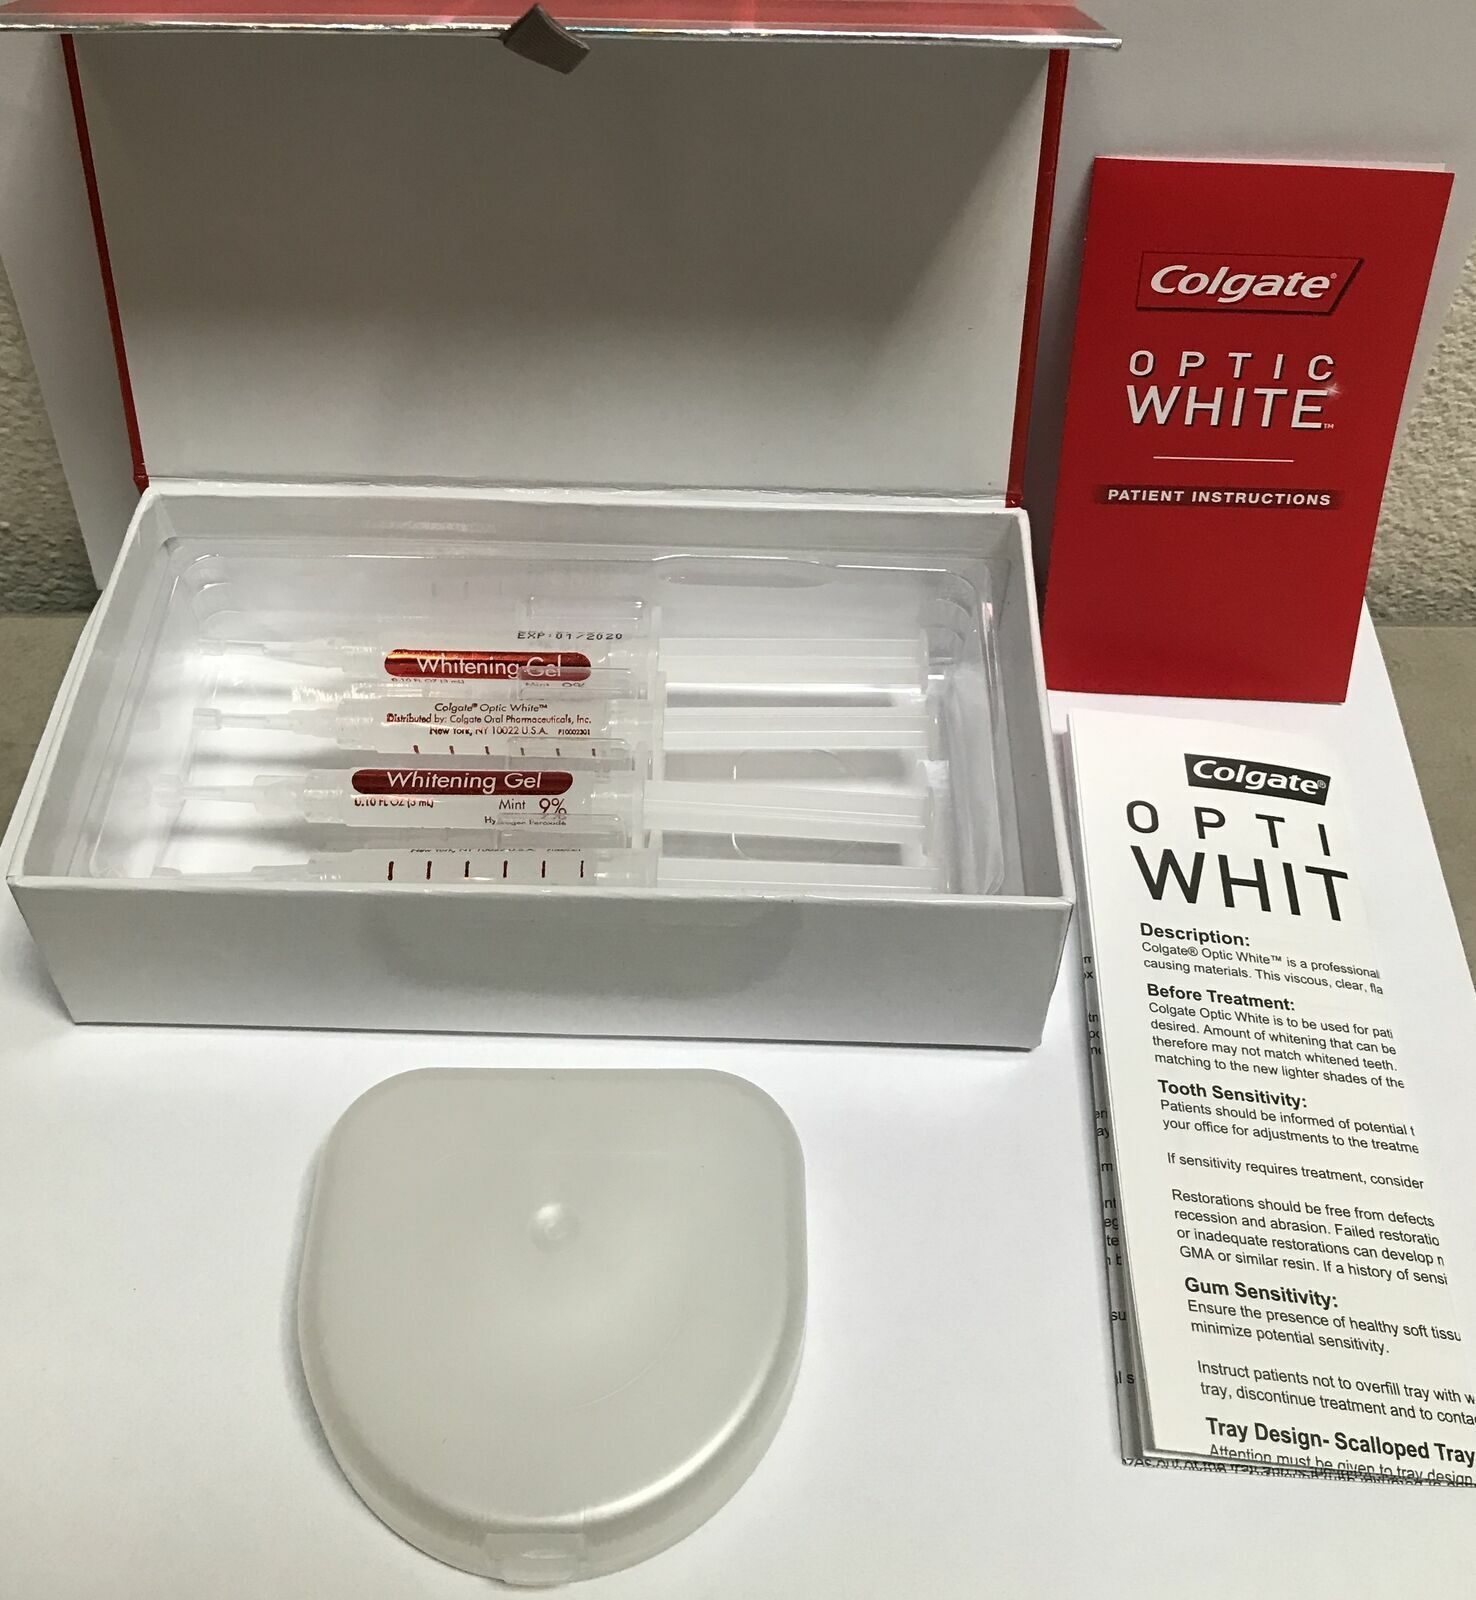 Colgate Optic White Gel Professional Whitening Take Home Kit 9 For Sale Online Ebay